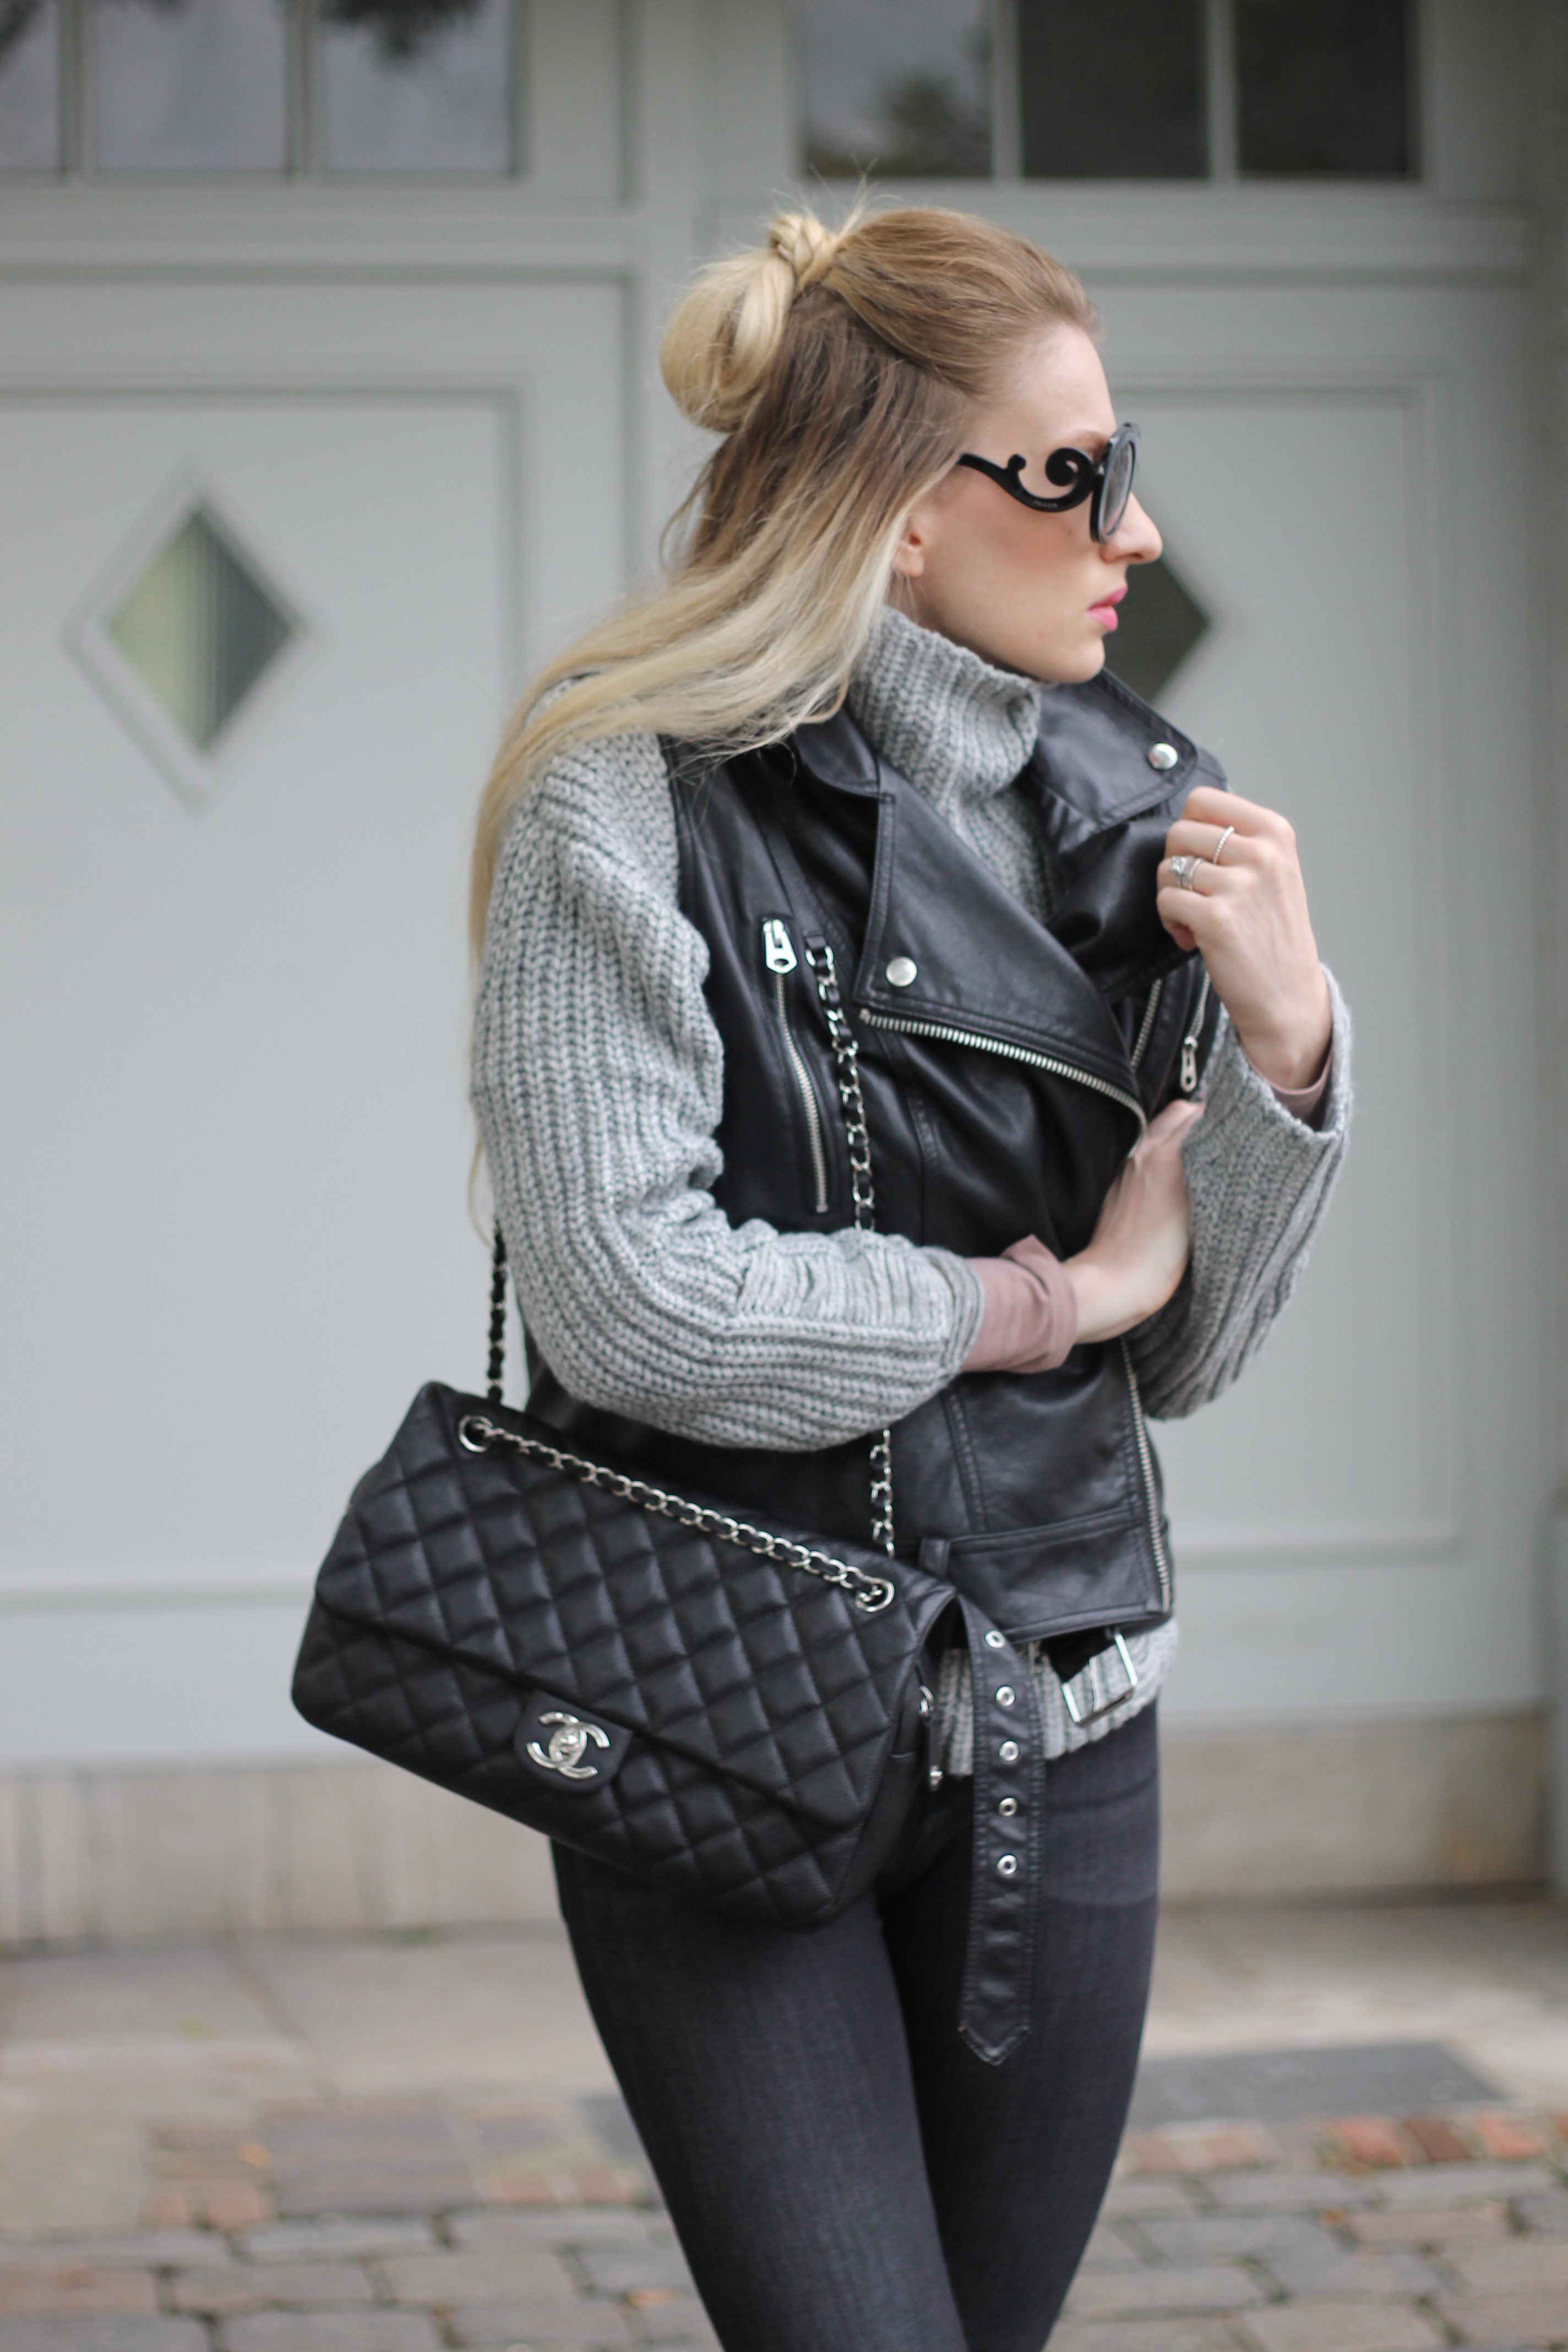 Mon Mode, Fashionblog, Berlin, Knitwear, Chunky Knits, Vest, Biker Vest, Leather Vest, Celine Sunglasses